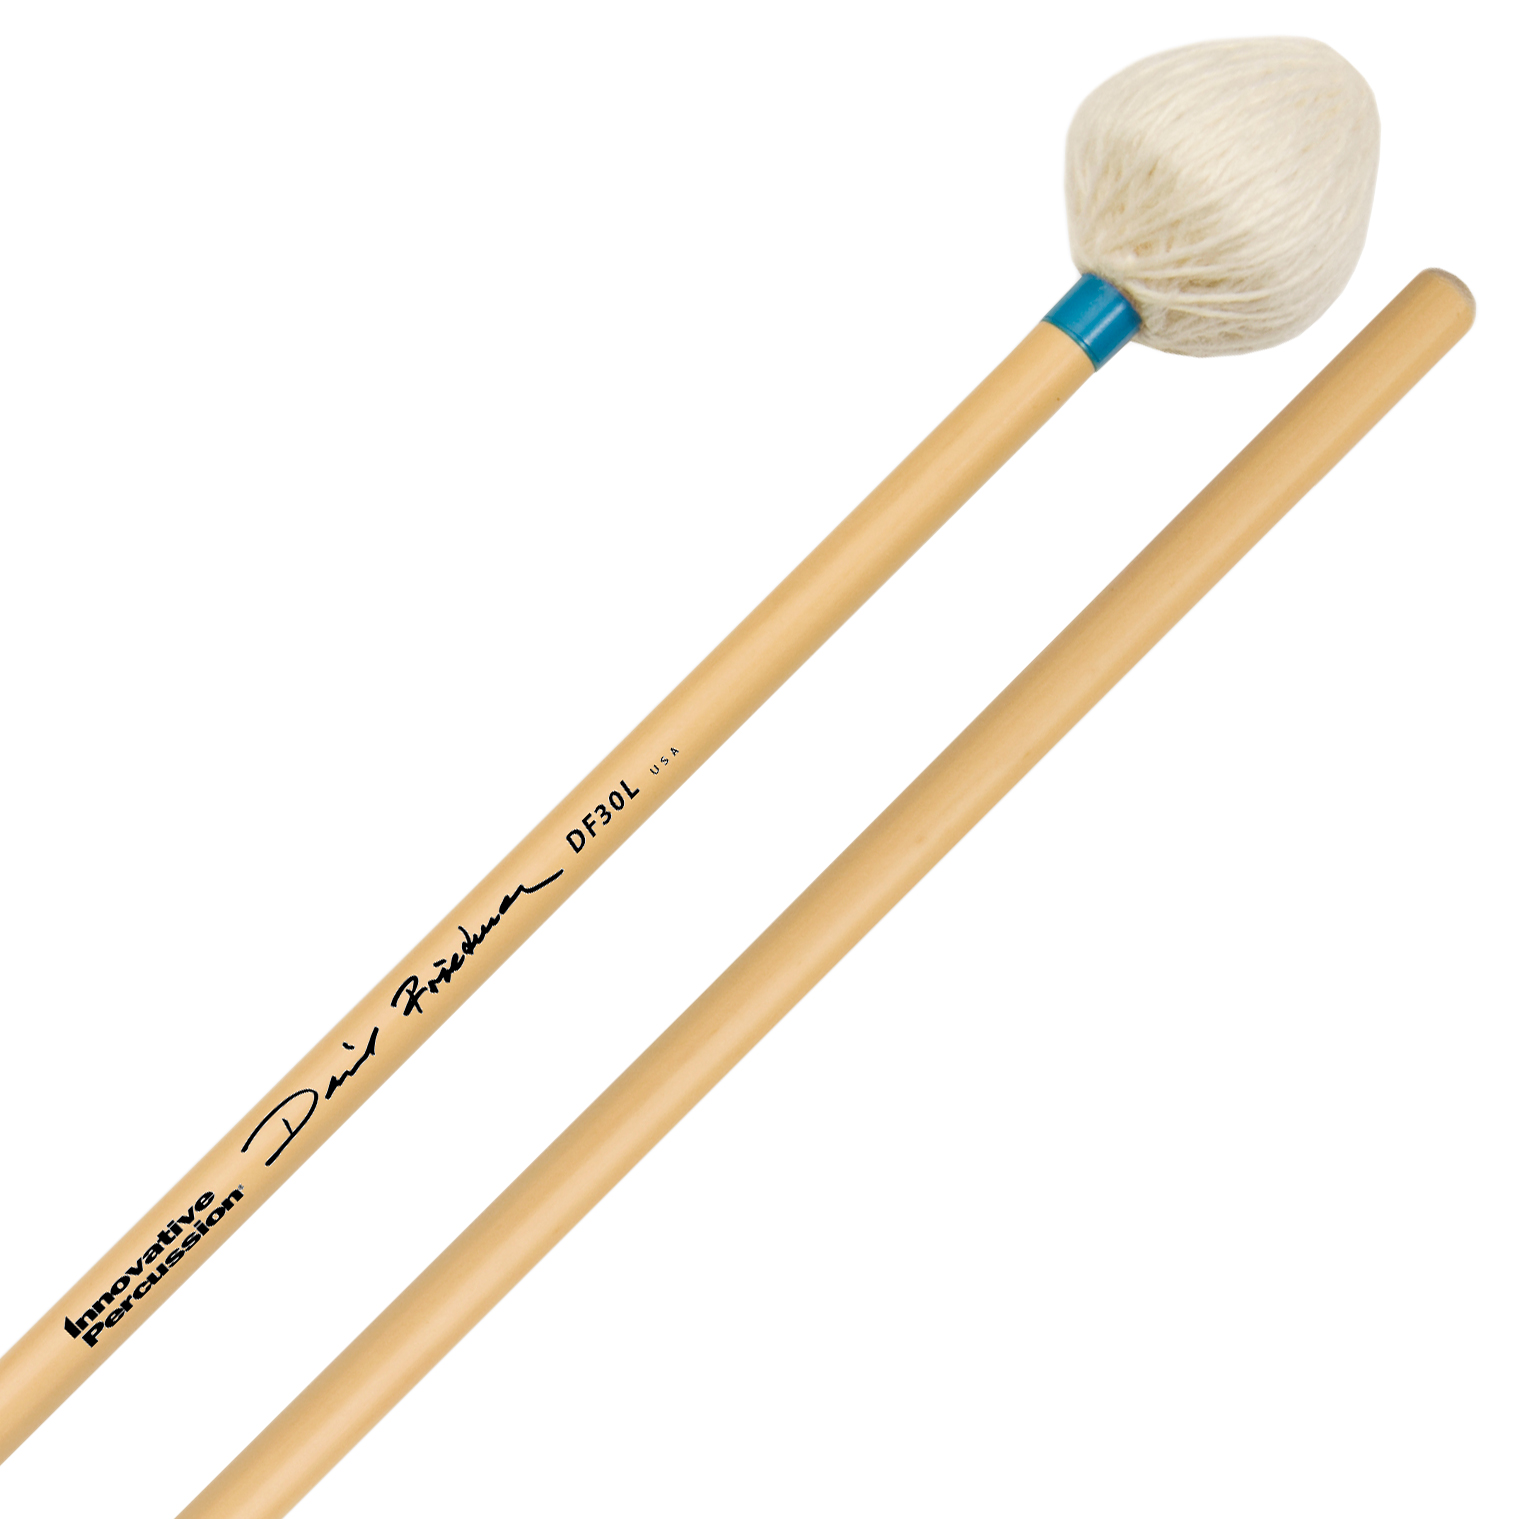 Innovative Percussion David Friedman Signature Light Vibraphone Mallets